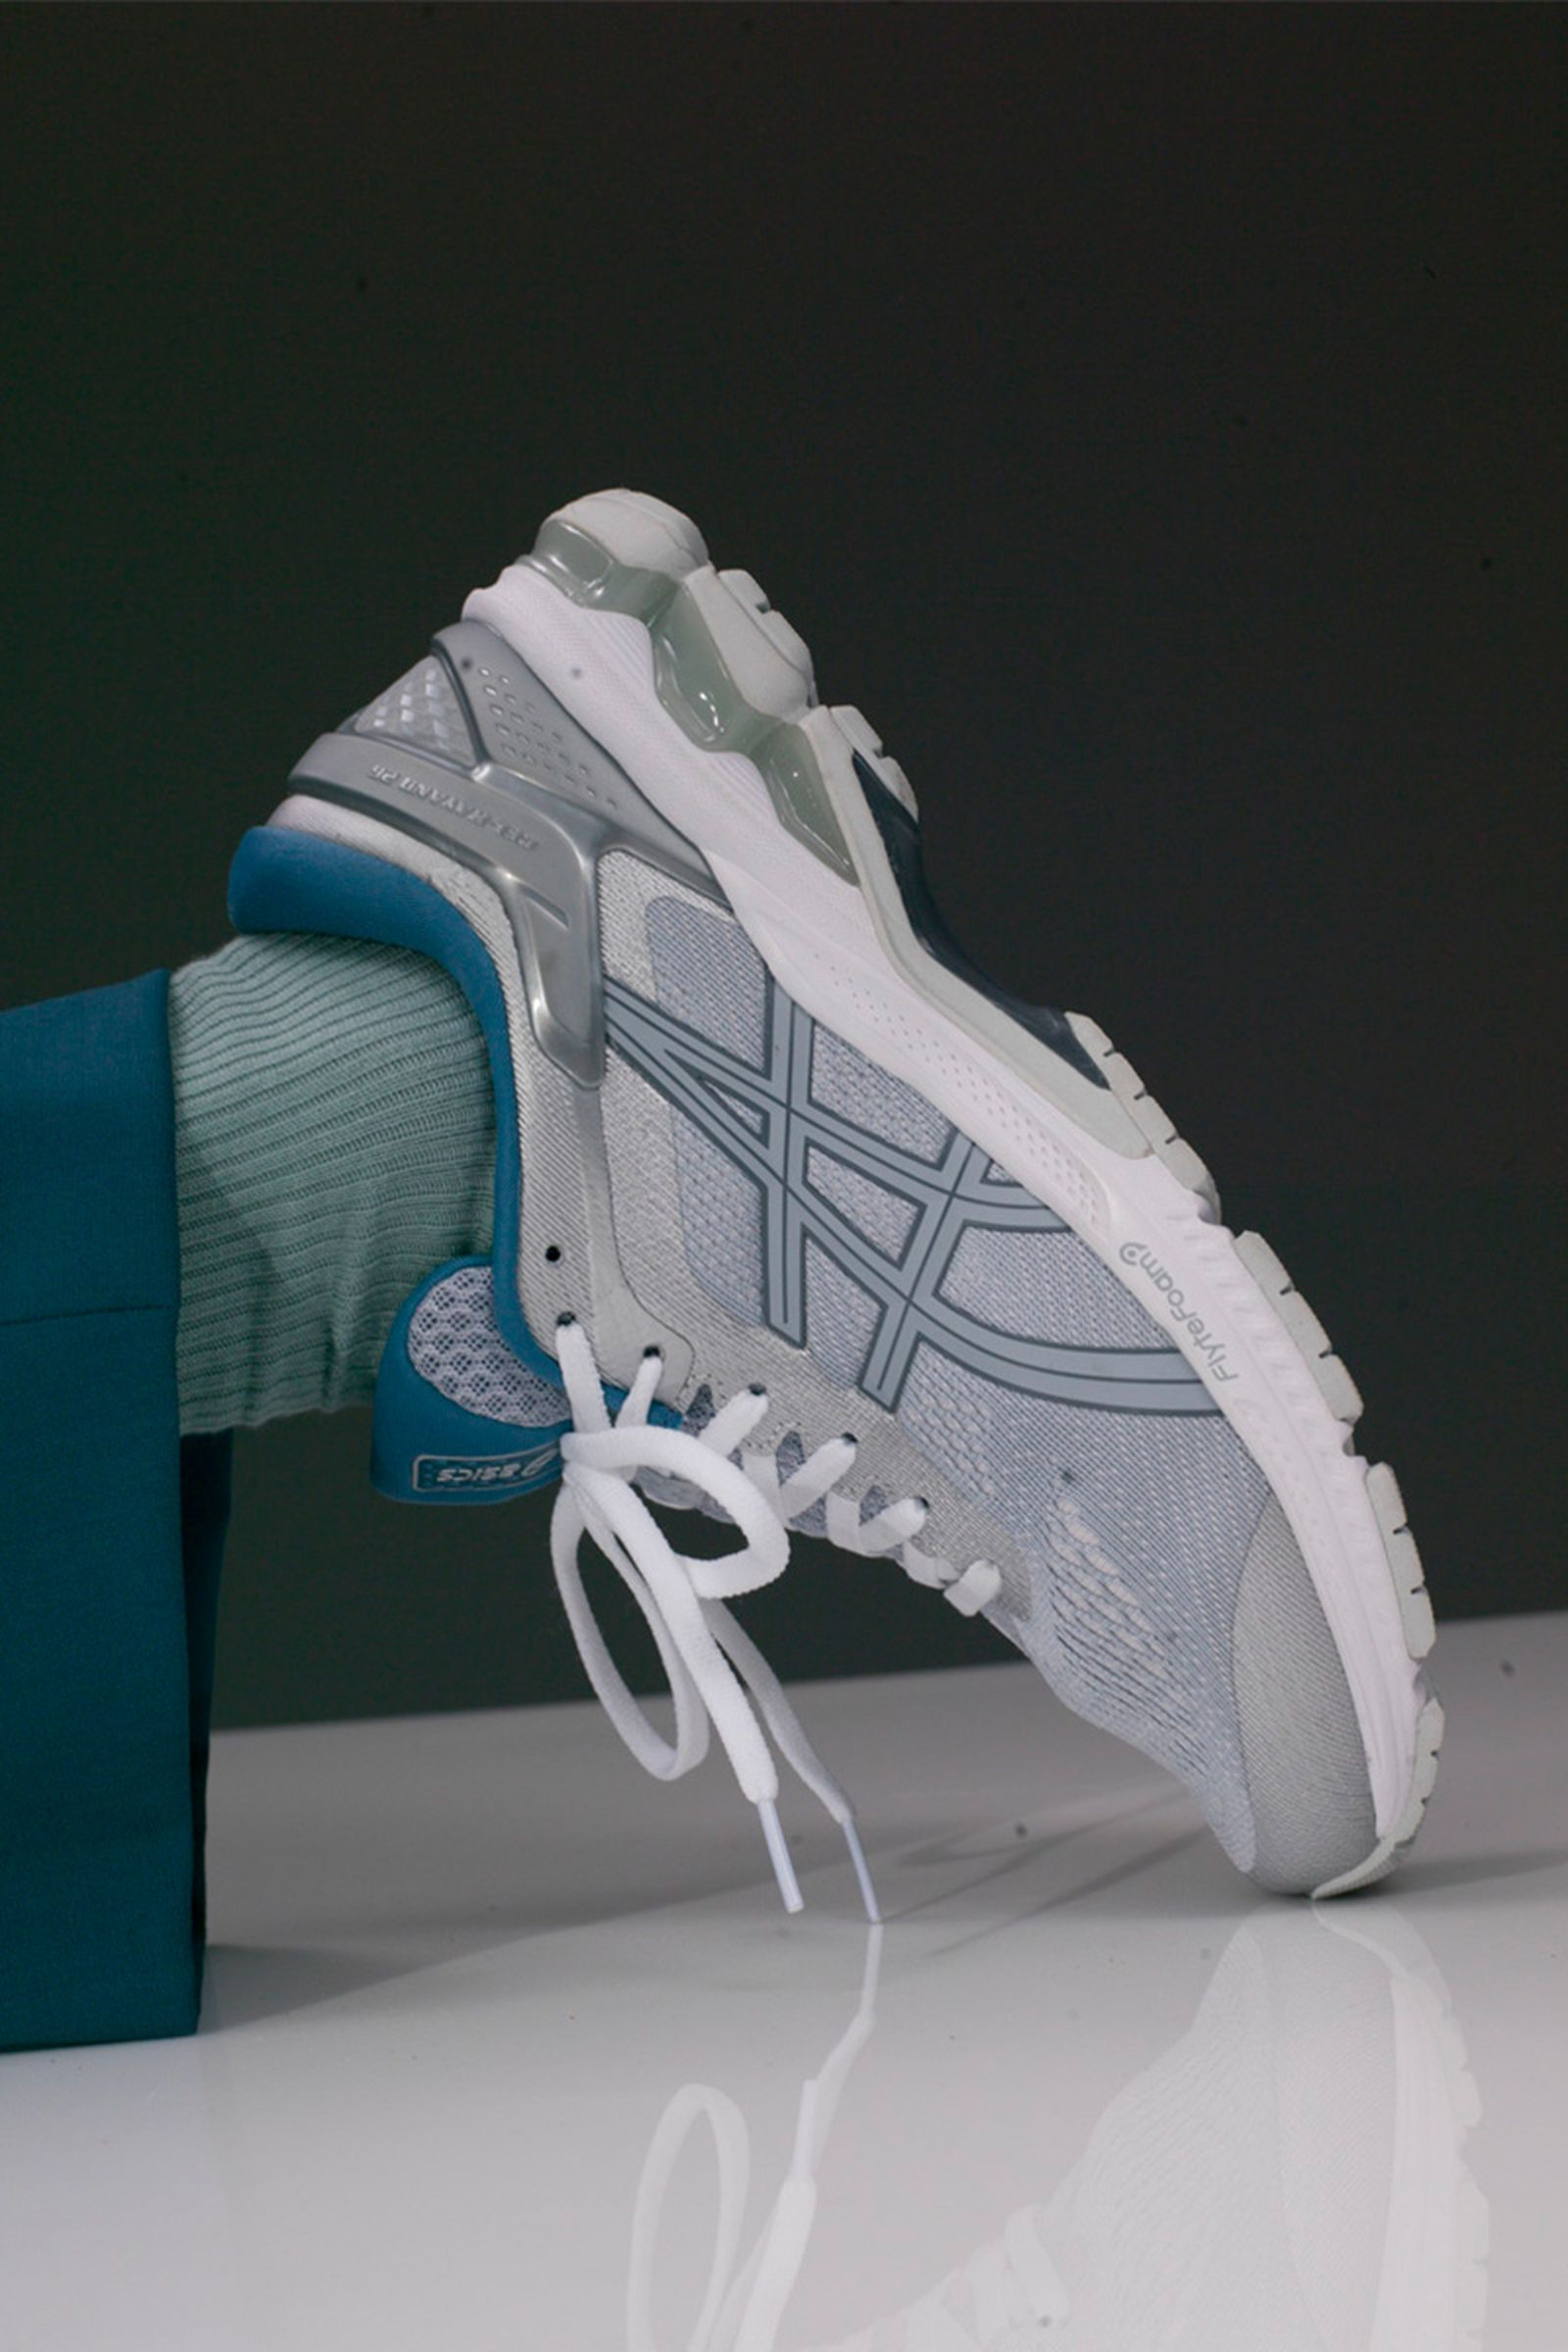 Mar sobras Entretenimiento  ASICS Drops New Colors of the GEL-KAYANO 26 & GEL-NIMBUS 21